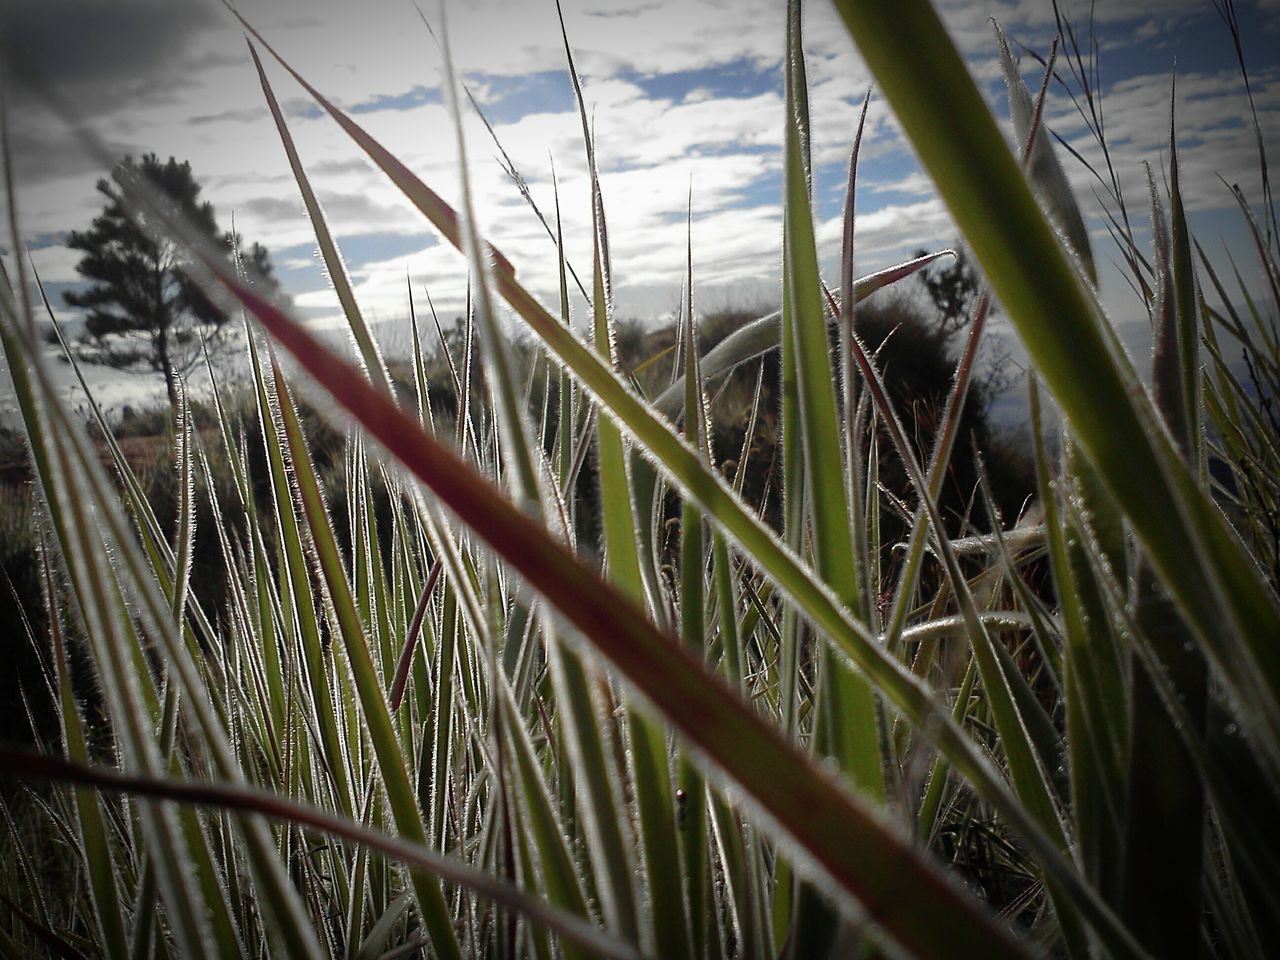 growth, grass, nature, plant, day, no people, outdoors, close-up, beauty in nature, sky